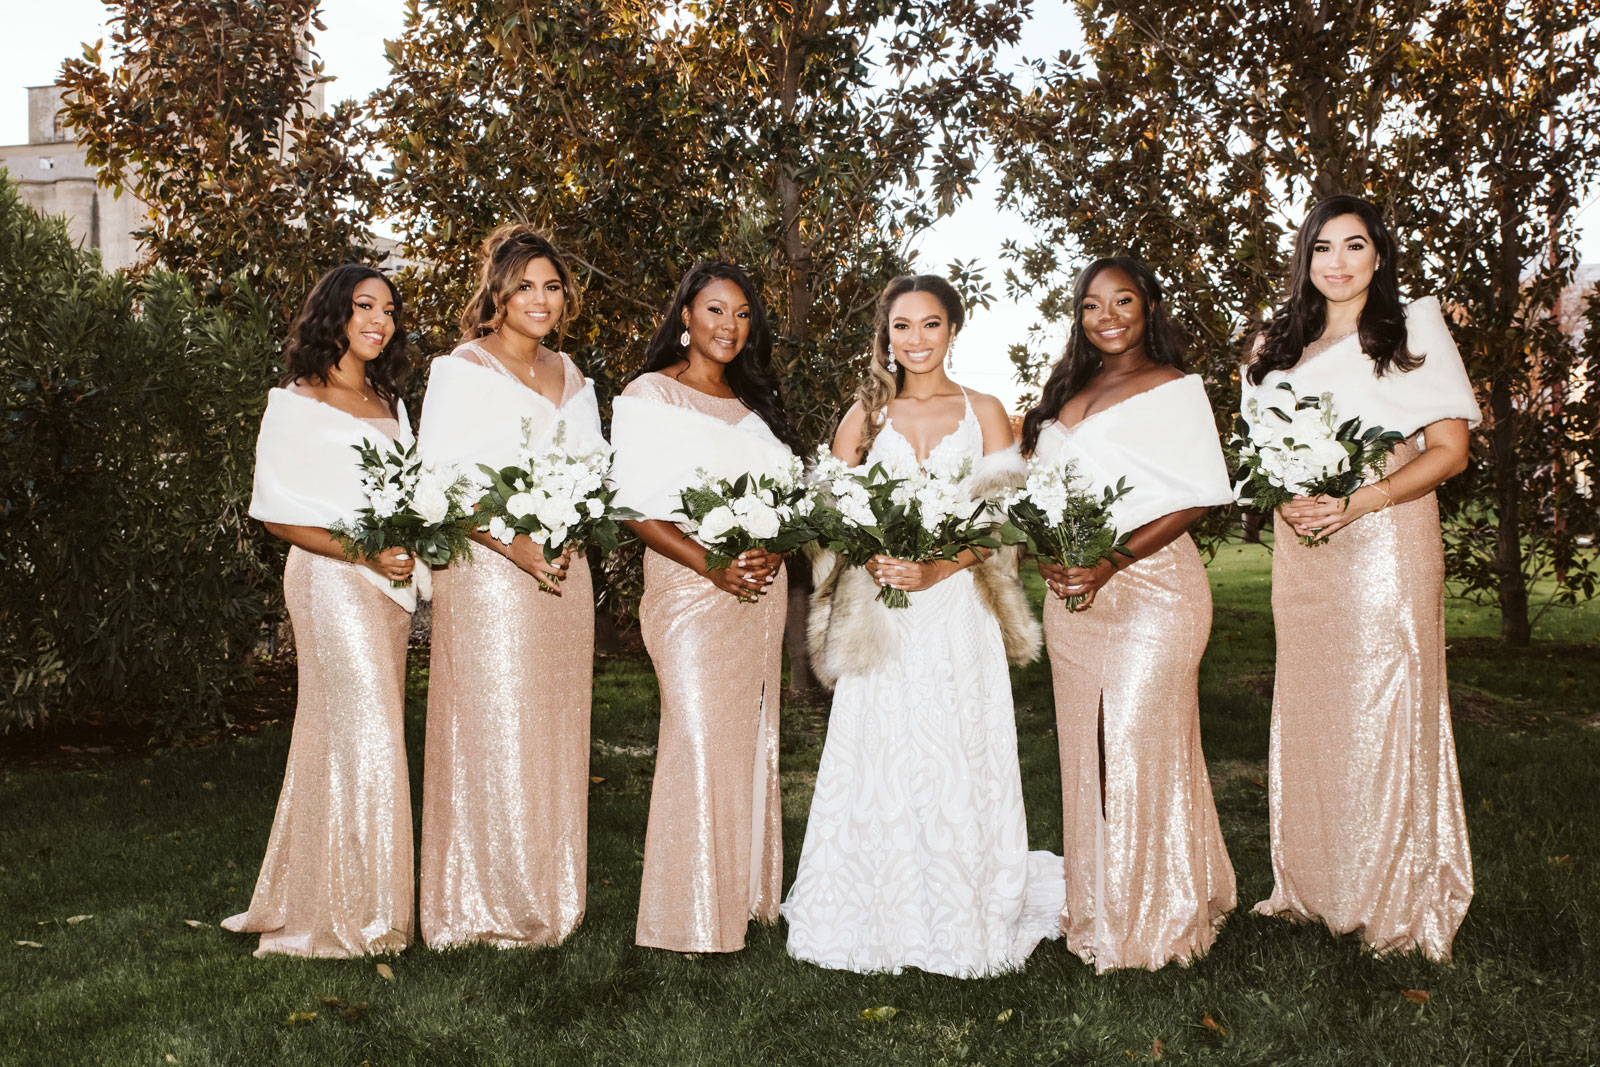 Bridal party, destination wedding photographer